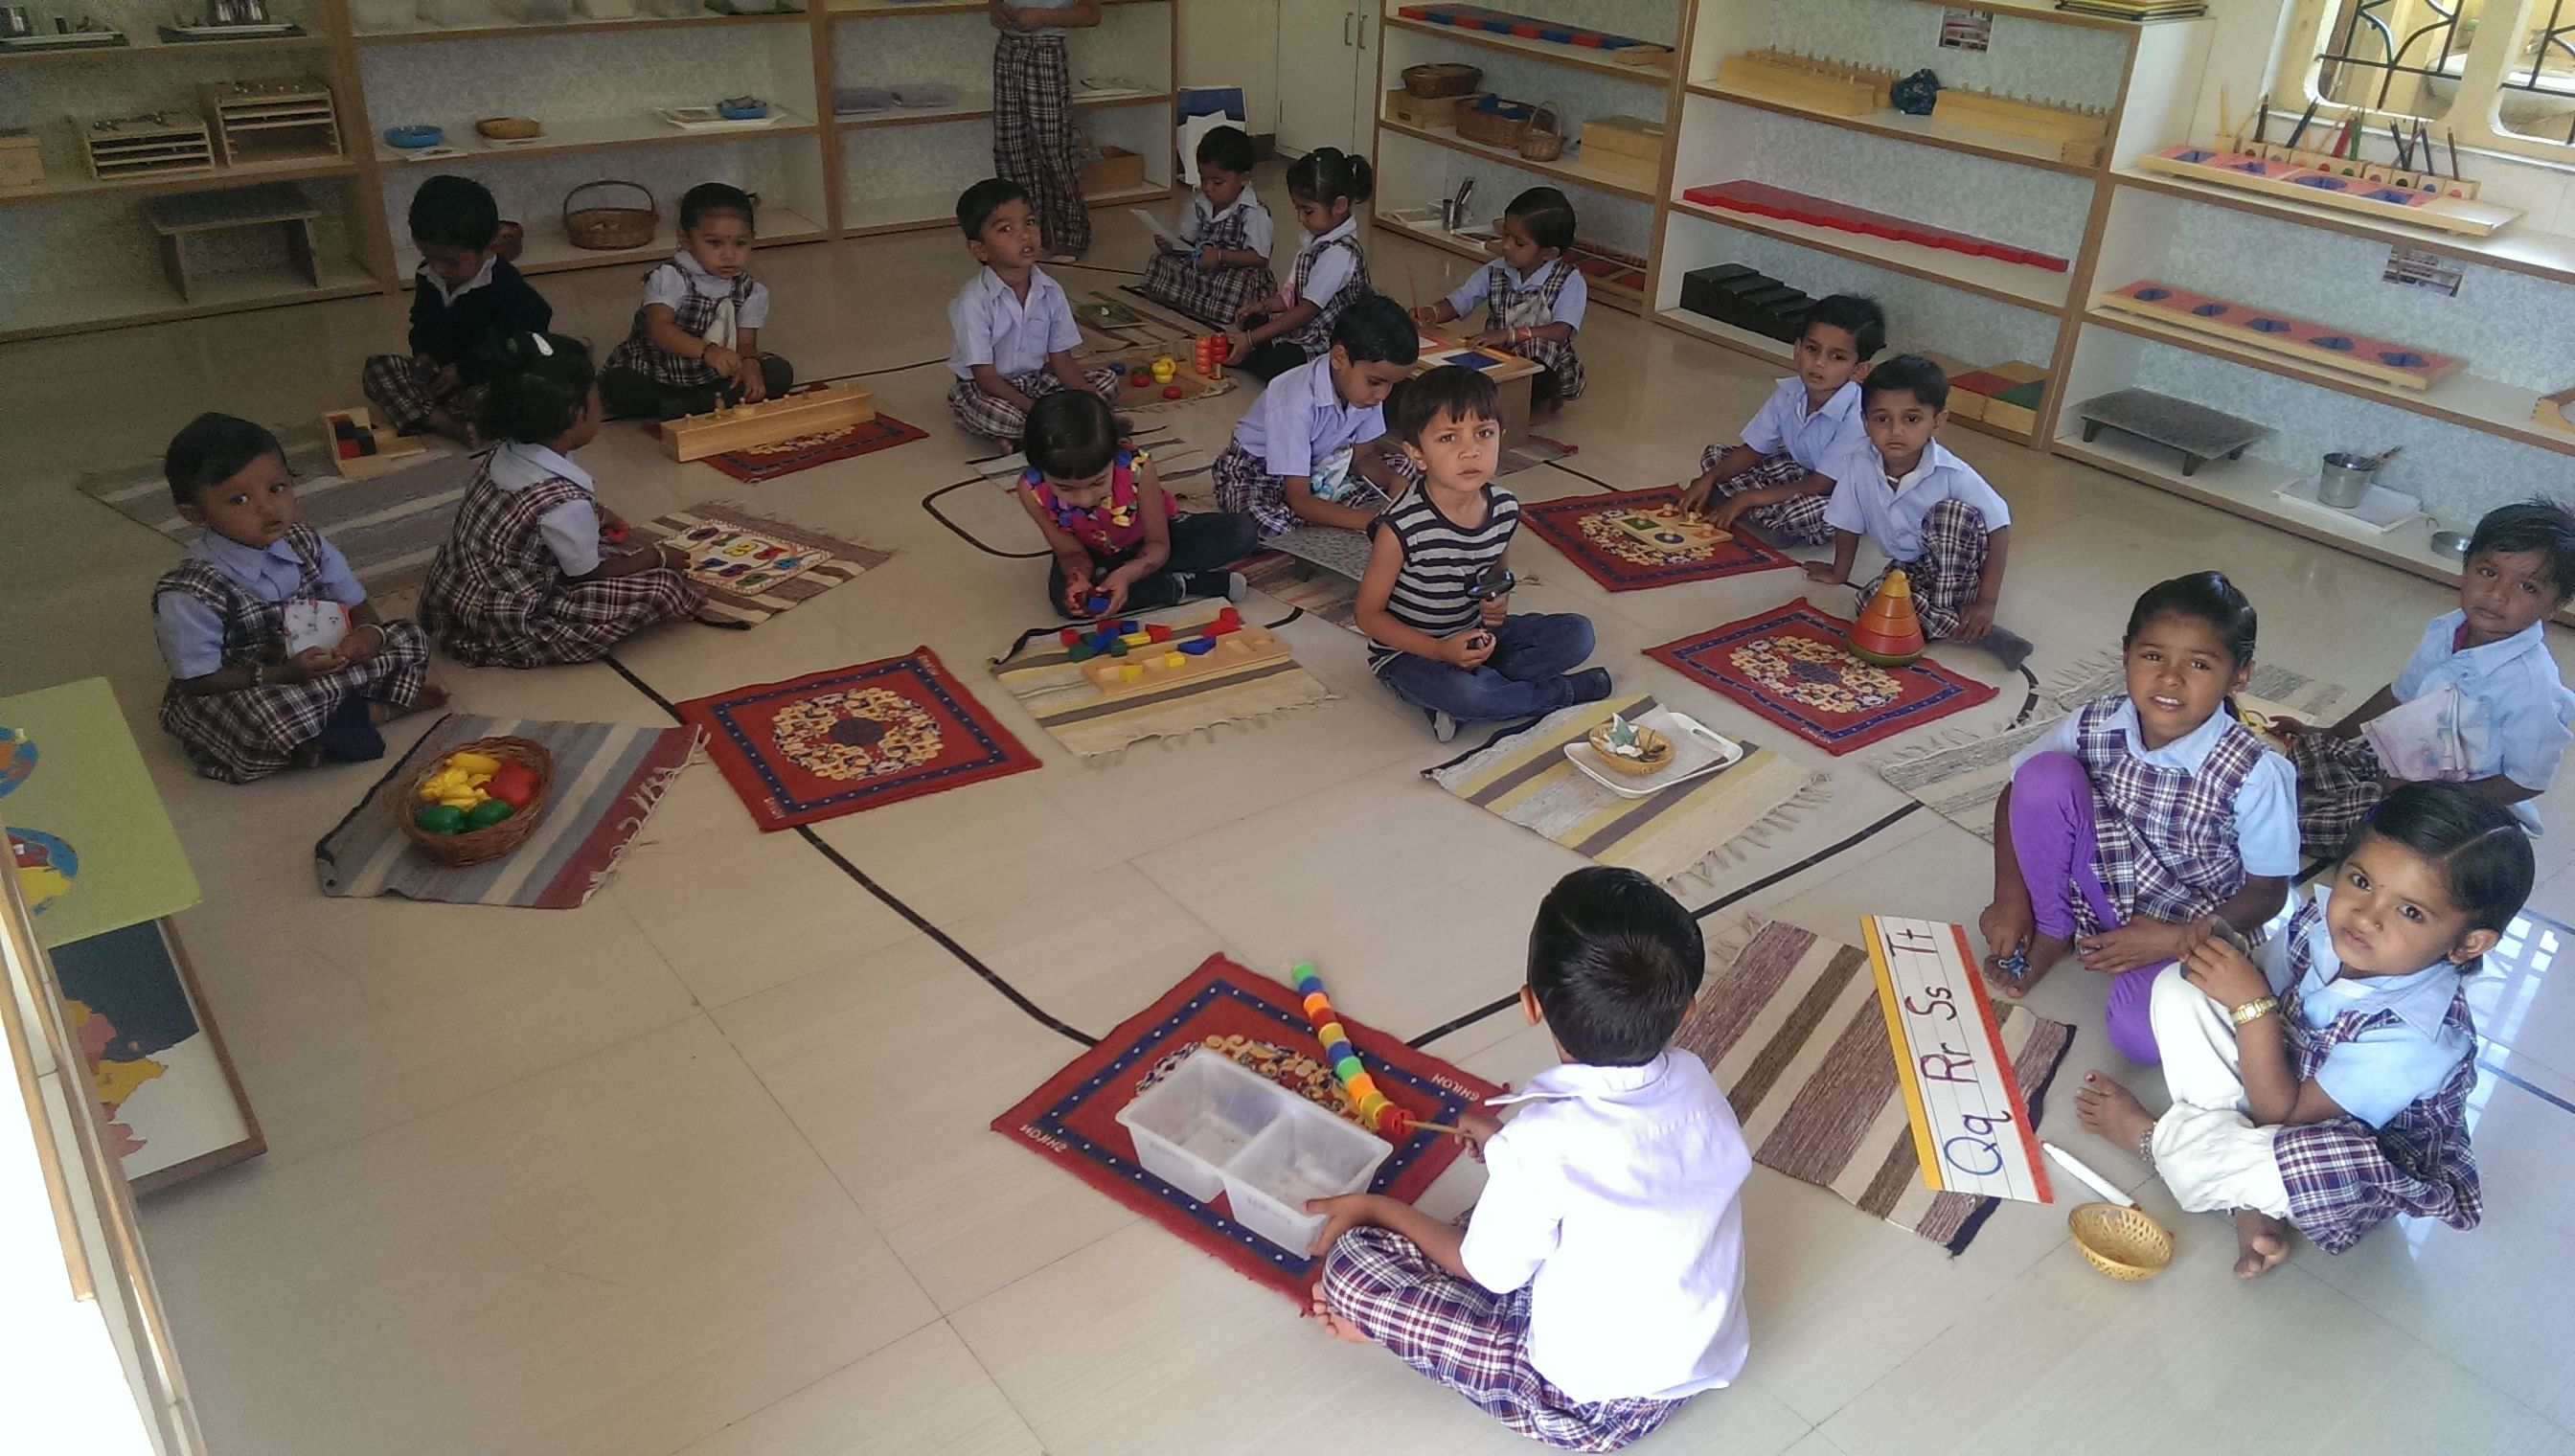 The montessori provides quality education opportunities to underprivileged kids too.